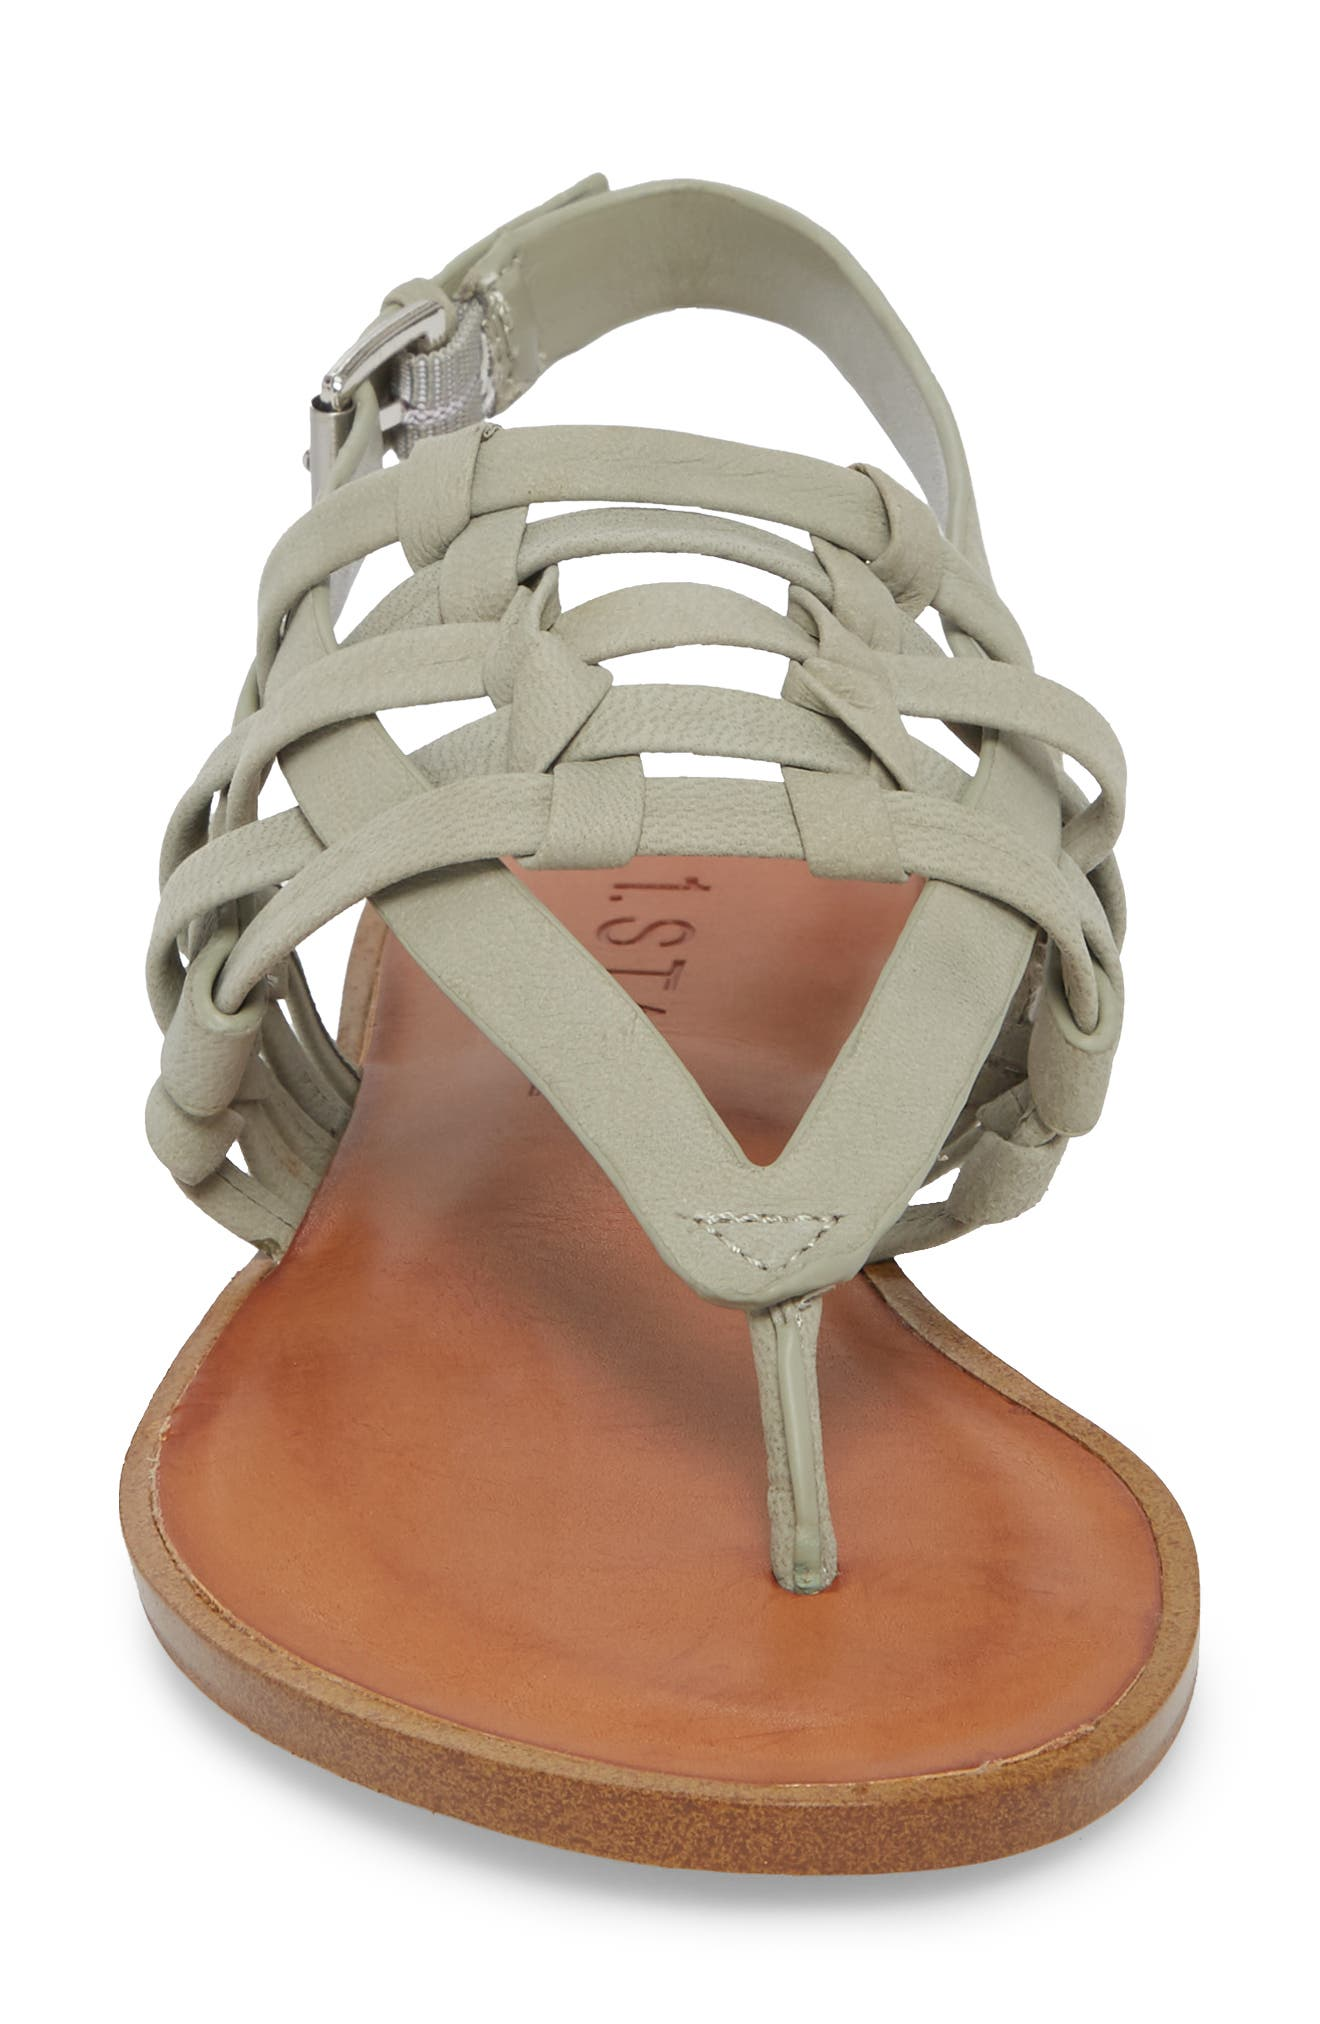 Lenn Sandal,                             Alternate thumbnail 4, color,                             Nettle Nubuck Leather